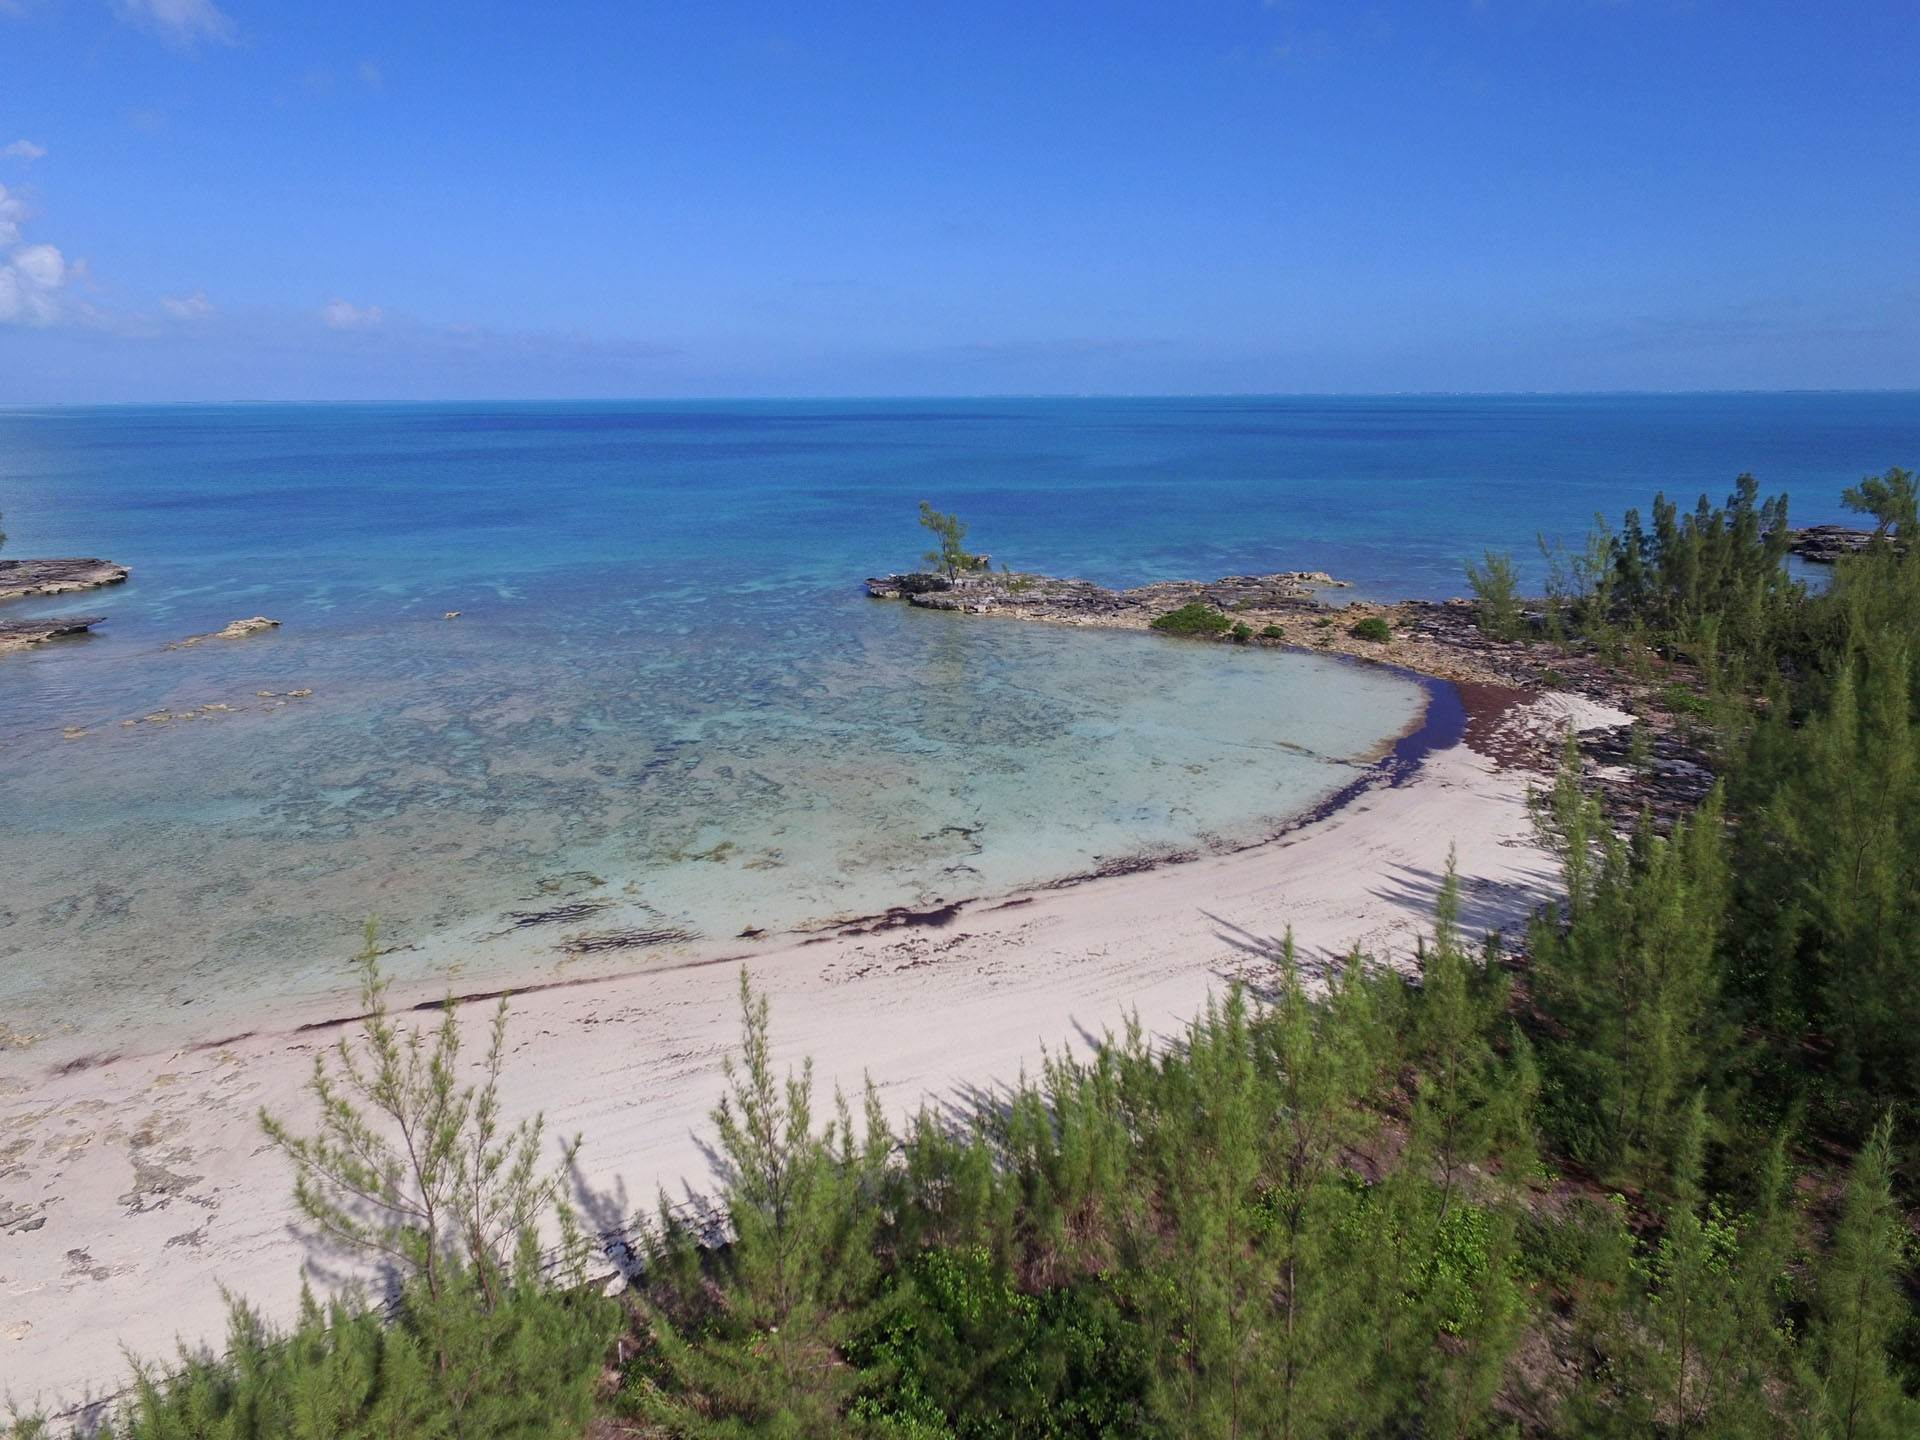 Terreno por un Venta en 2.257 Waterfront Acres, Central Abaco Island - Cabbage Point Parcel 2 - MLS 44256 Turtle Rocks, Abaco, Bahamas